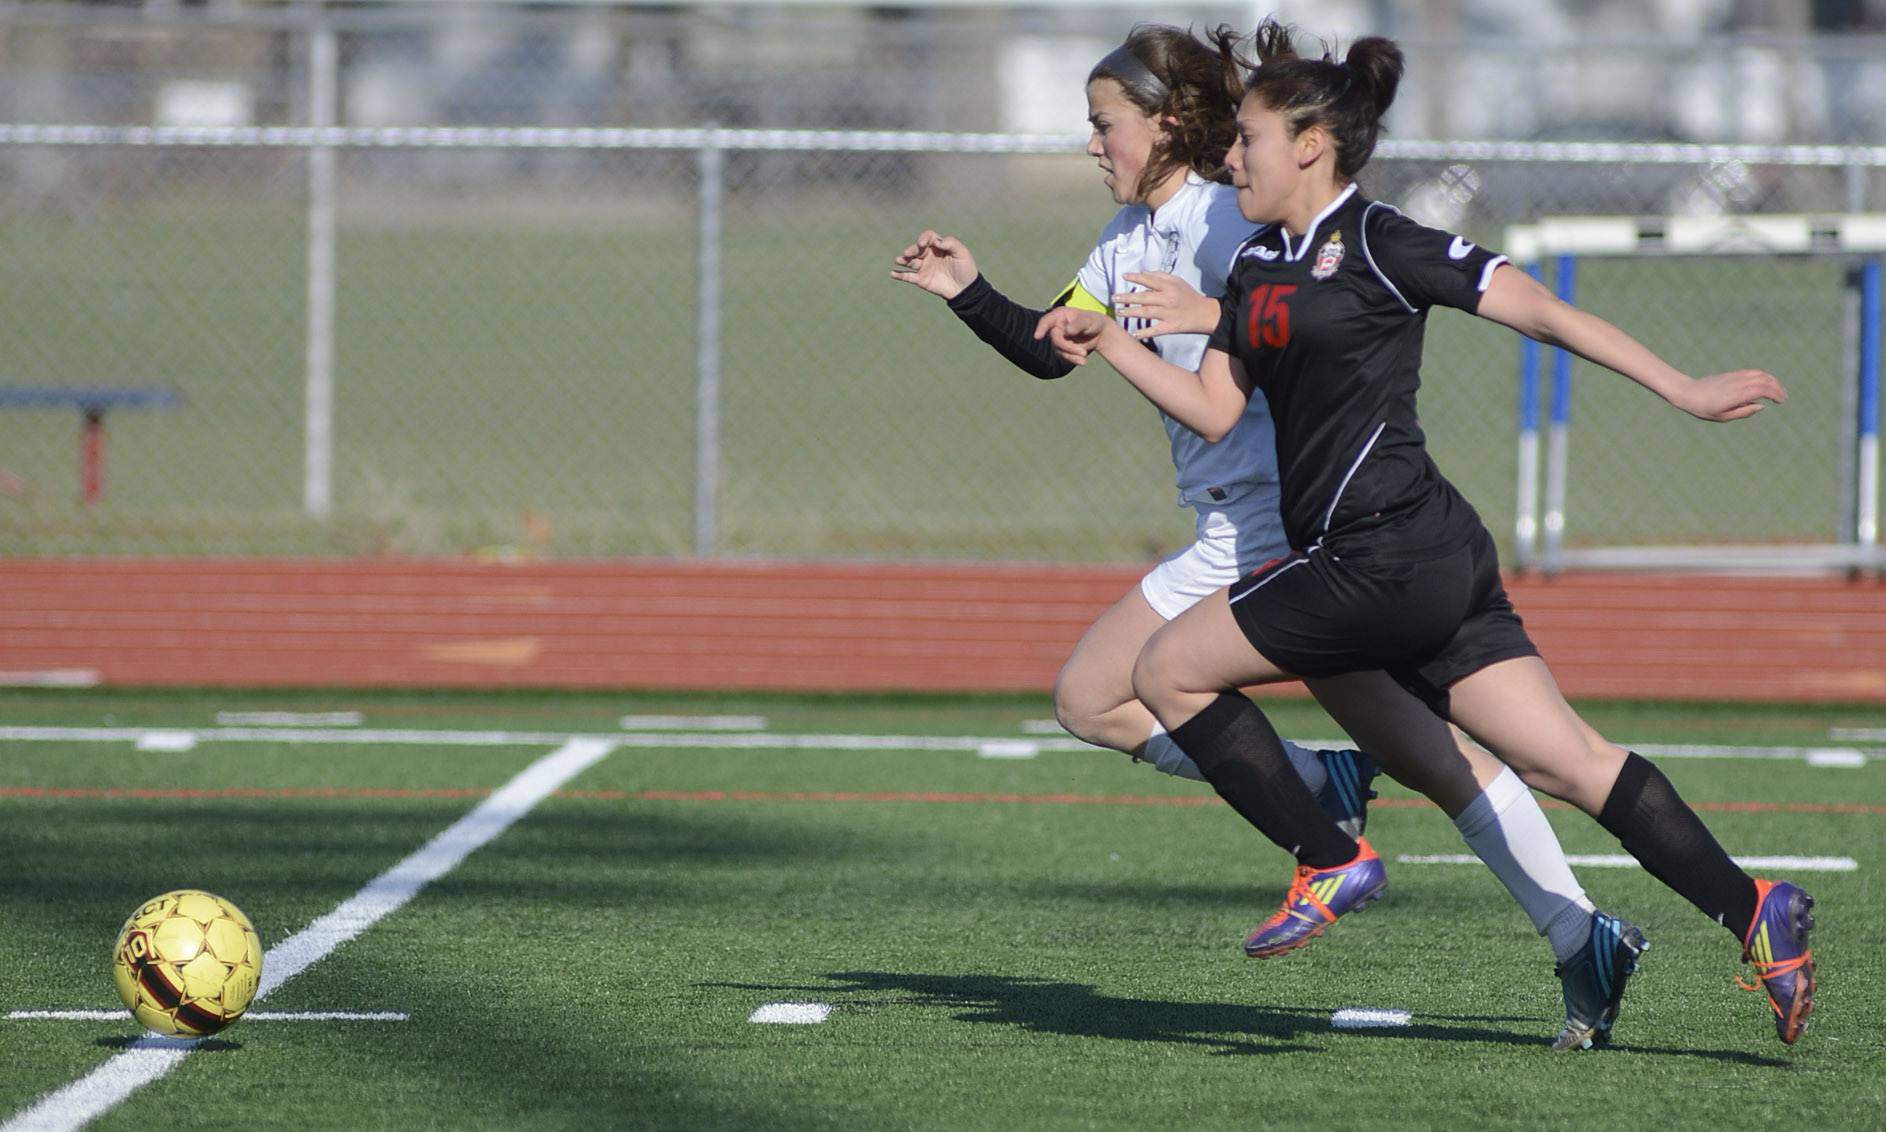 Kaneland's Michelle Ortiz and East Aurora's Jacqueline Palestina dash for the ball in the first half on Wednesday, April 16.